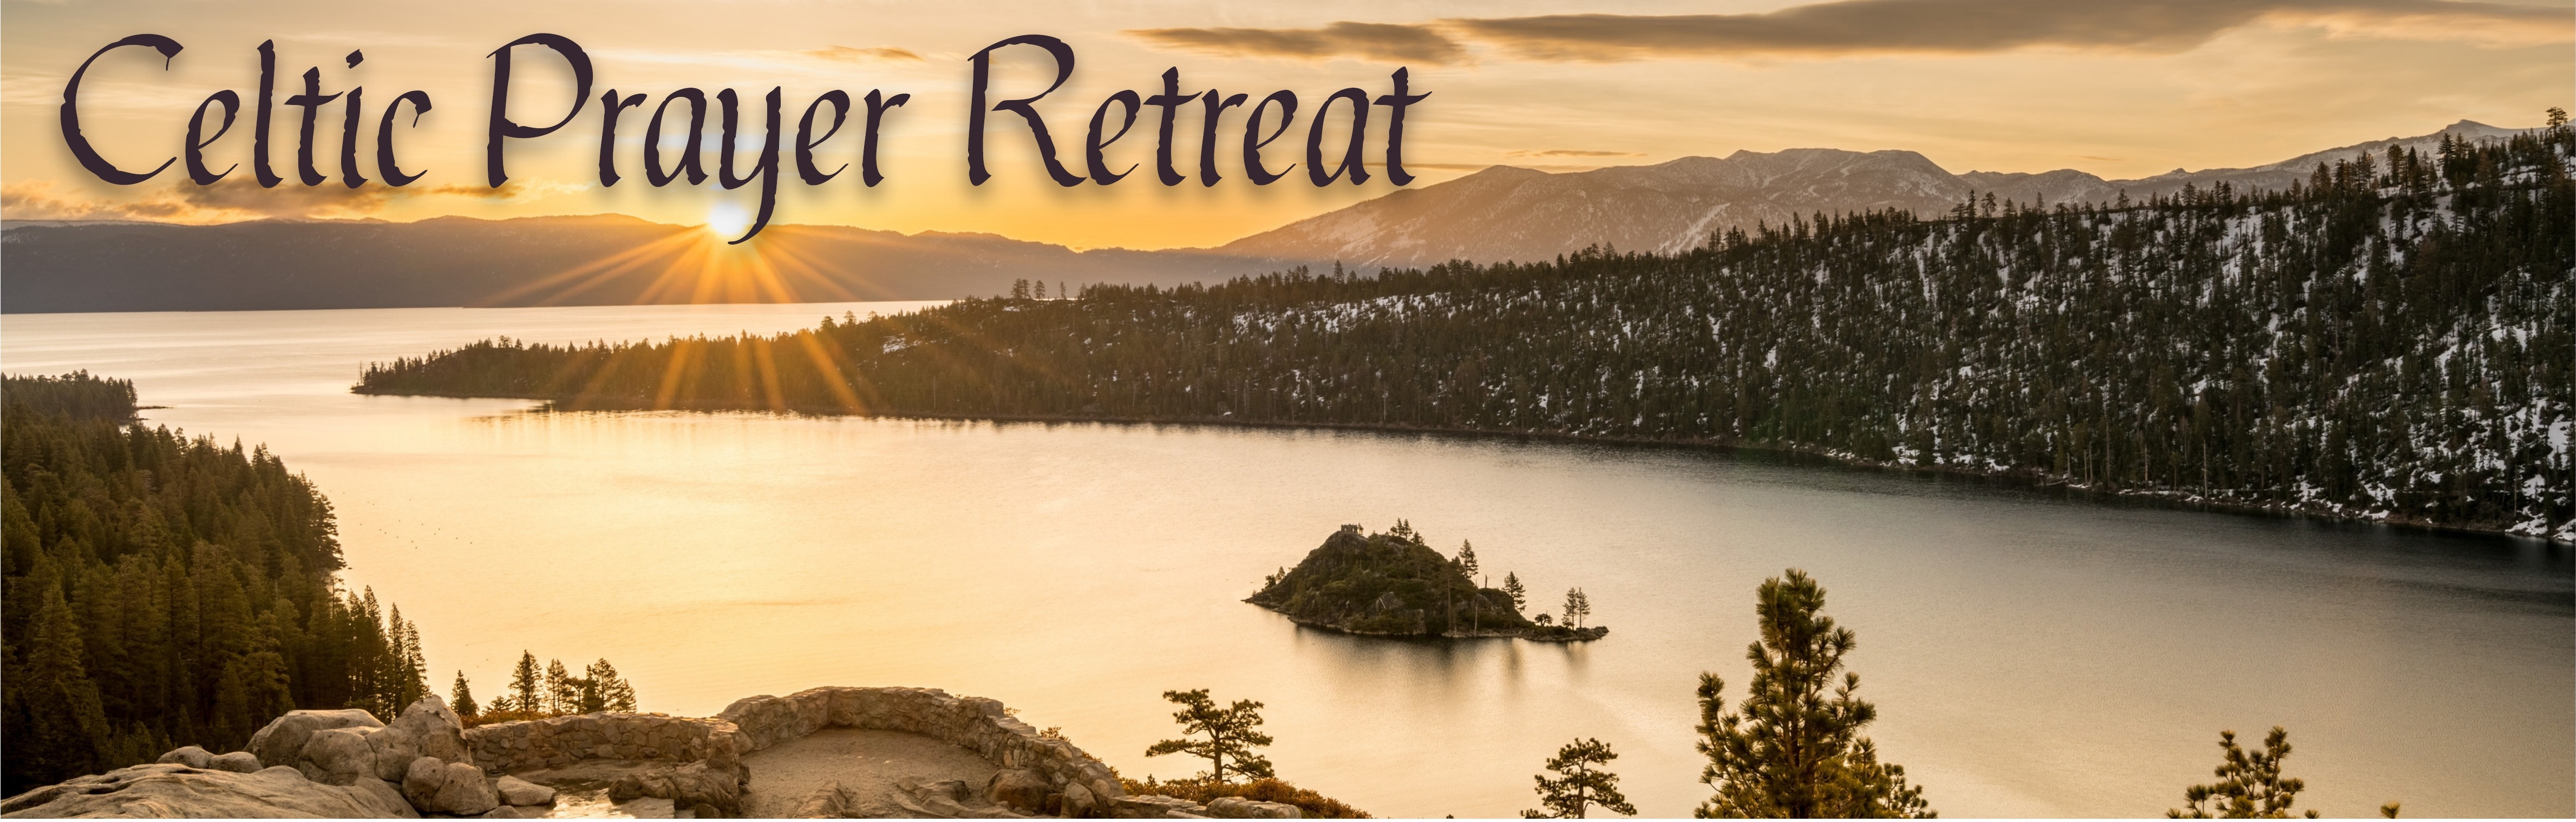 Celtic Prayer Retreat